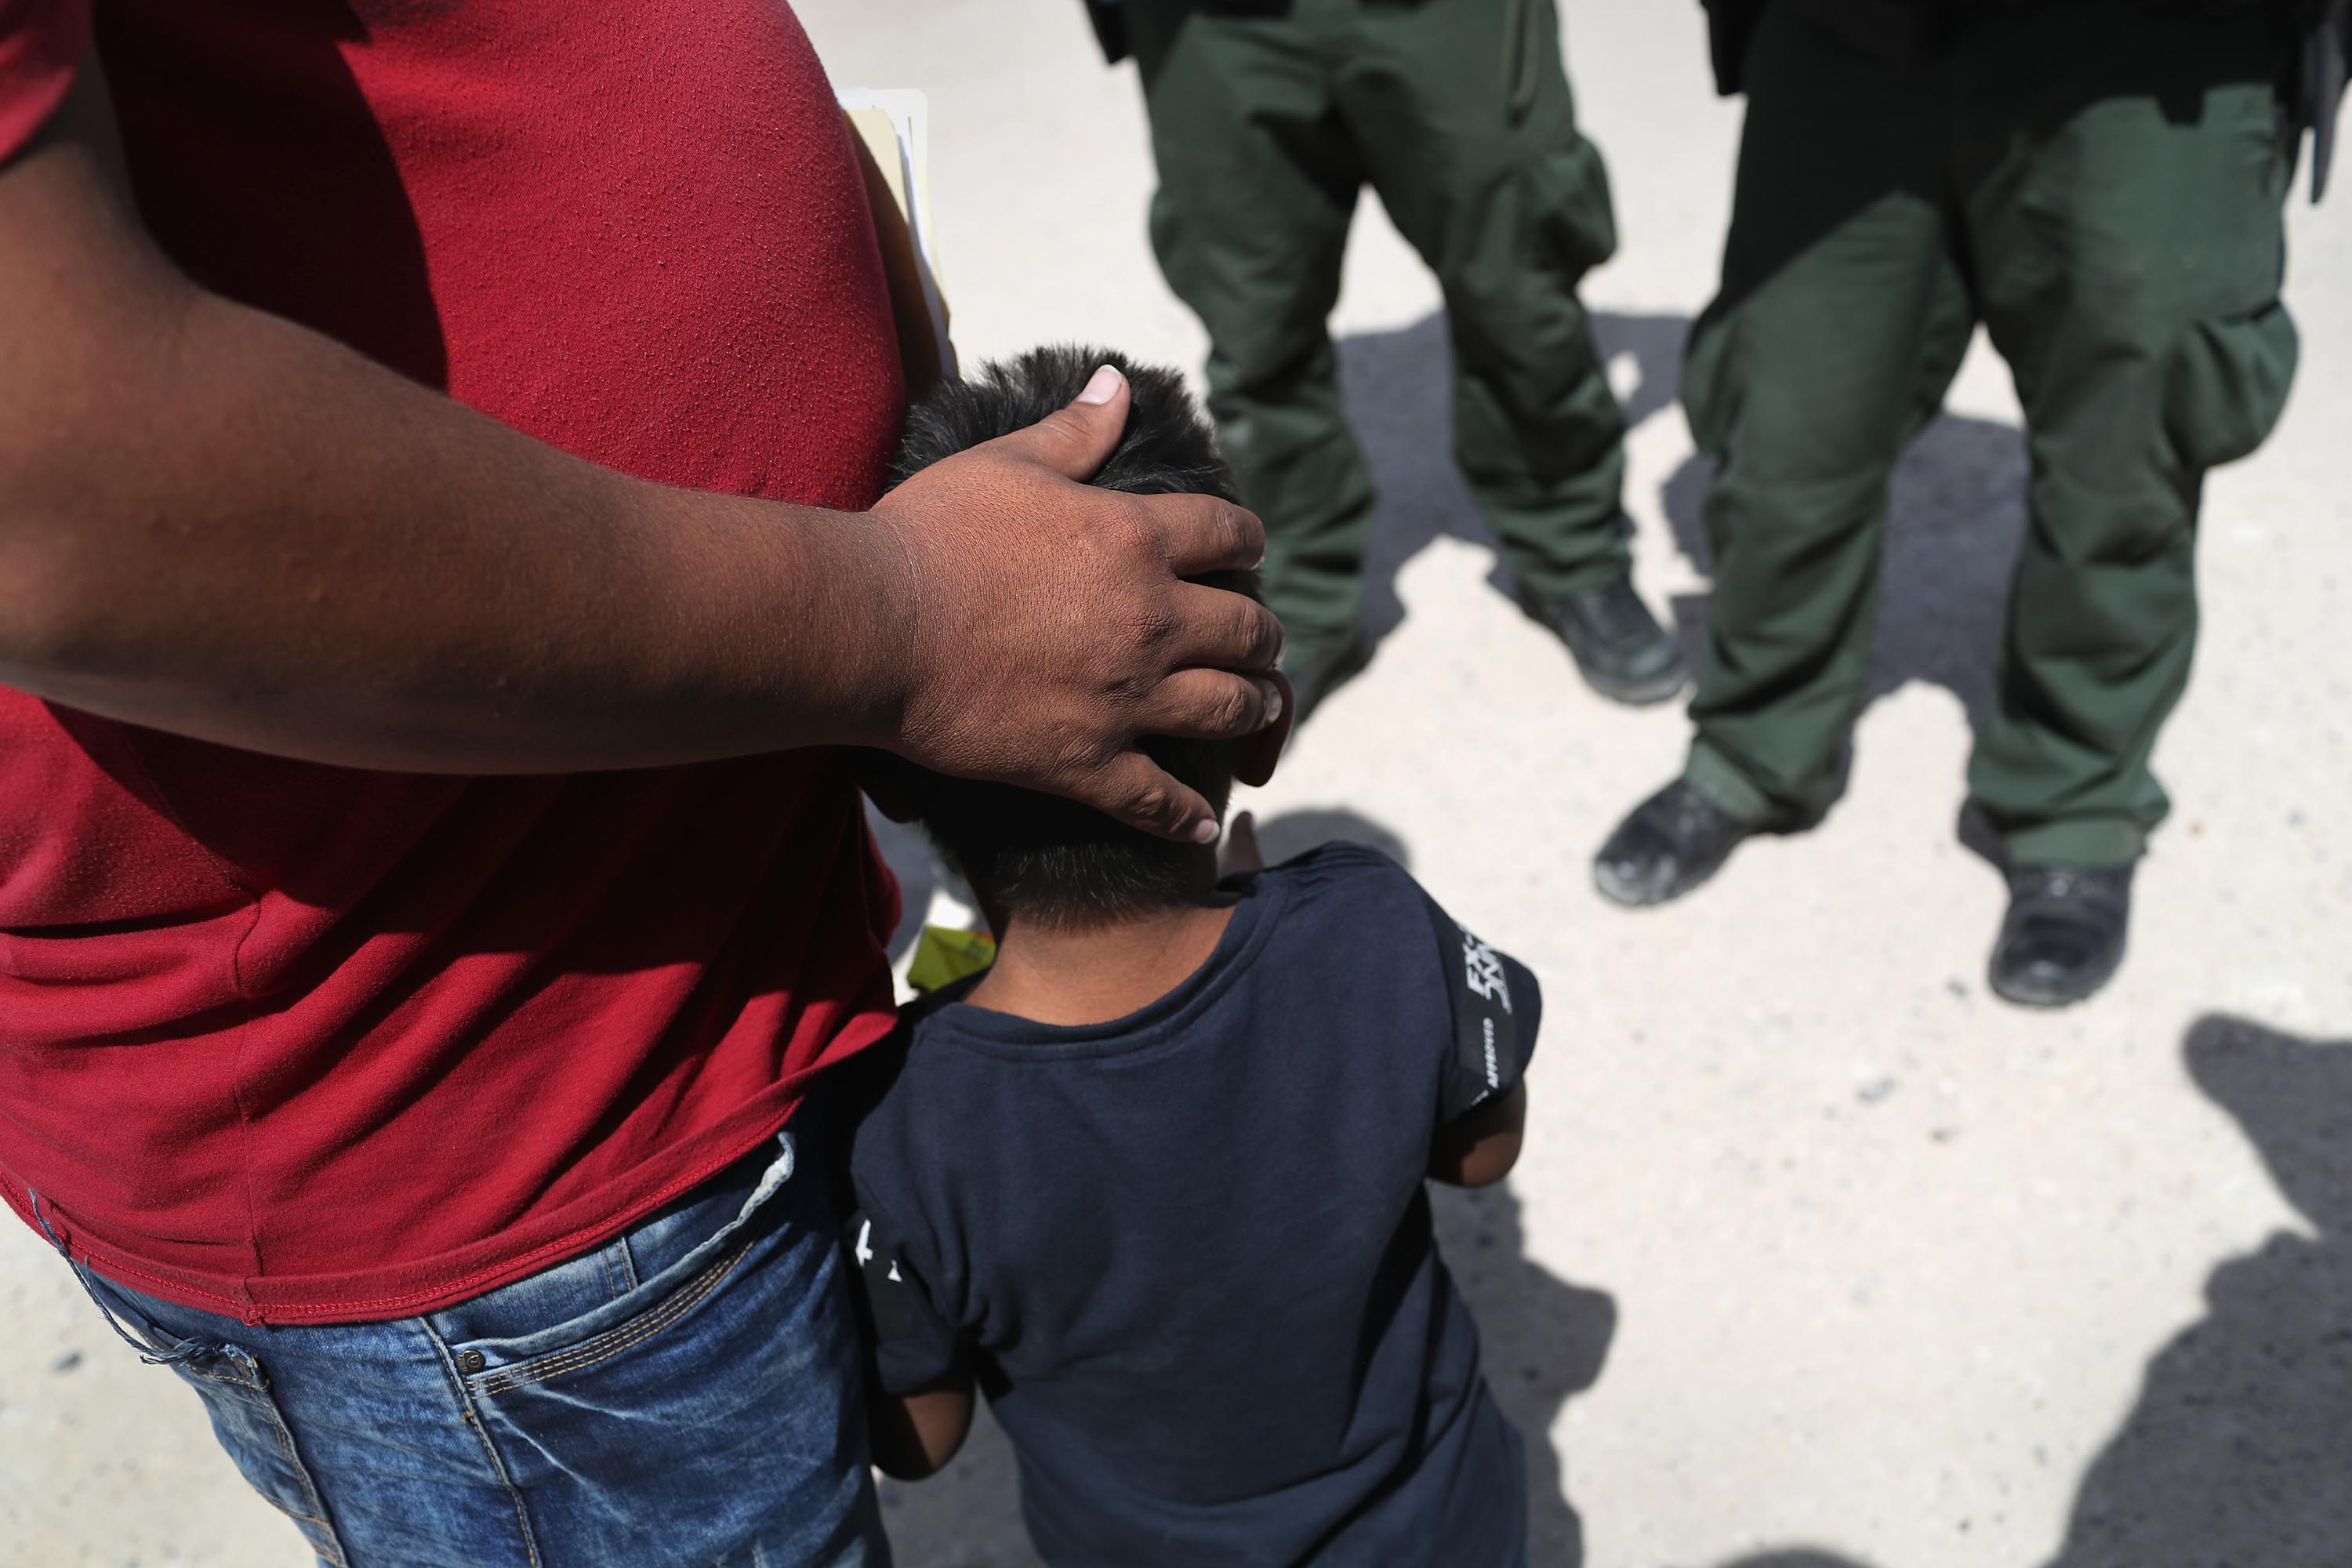 More than 20,000 unaccompanied migrant children are now in US custody